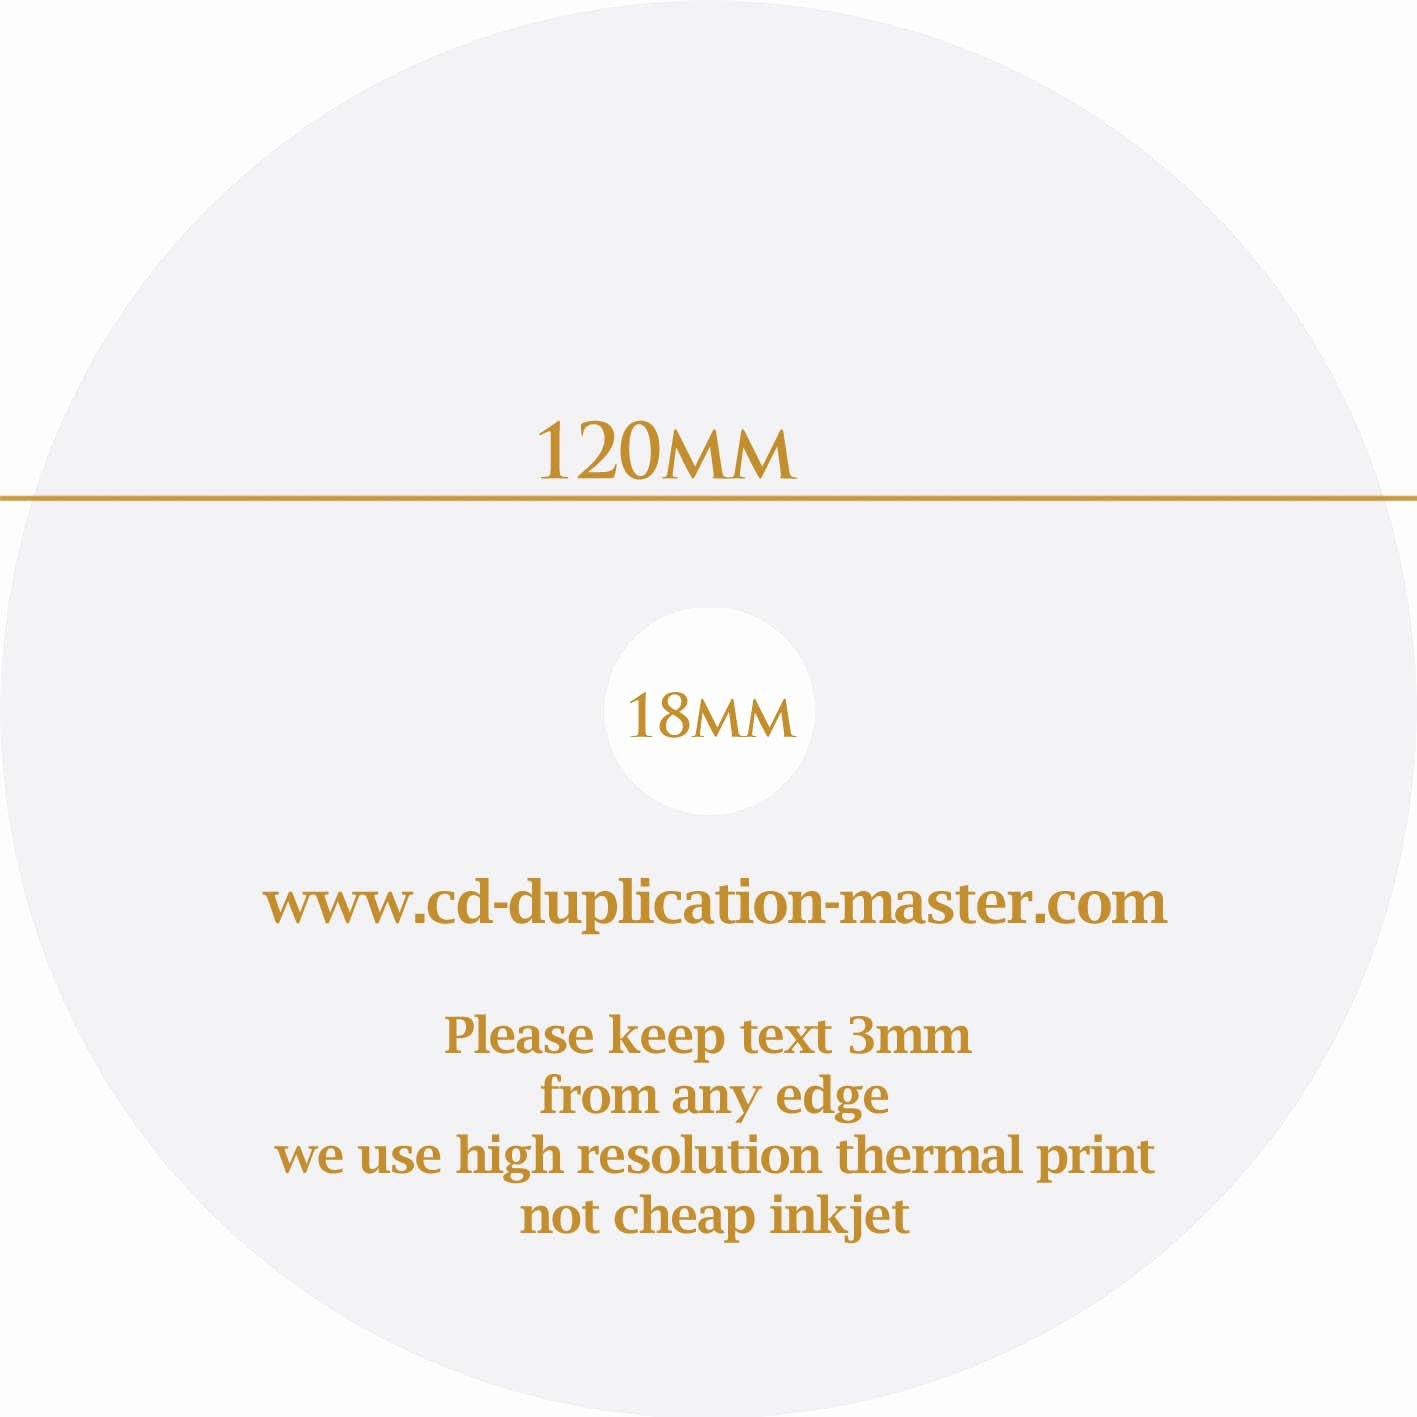 Compact Disc Template Best Of Digipak 6 Panel – Cd Duplication and Mastering